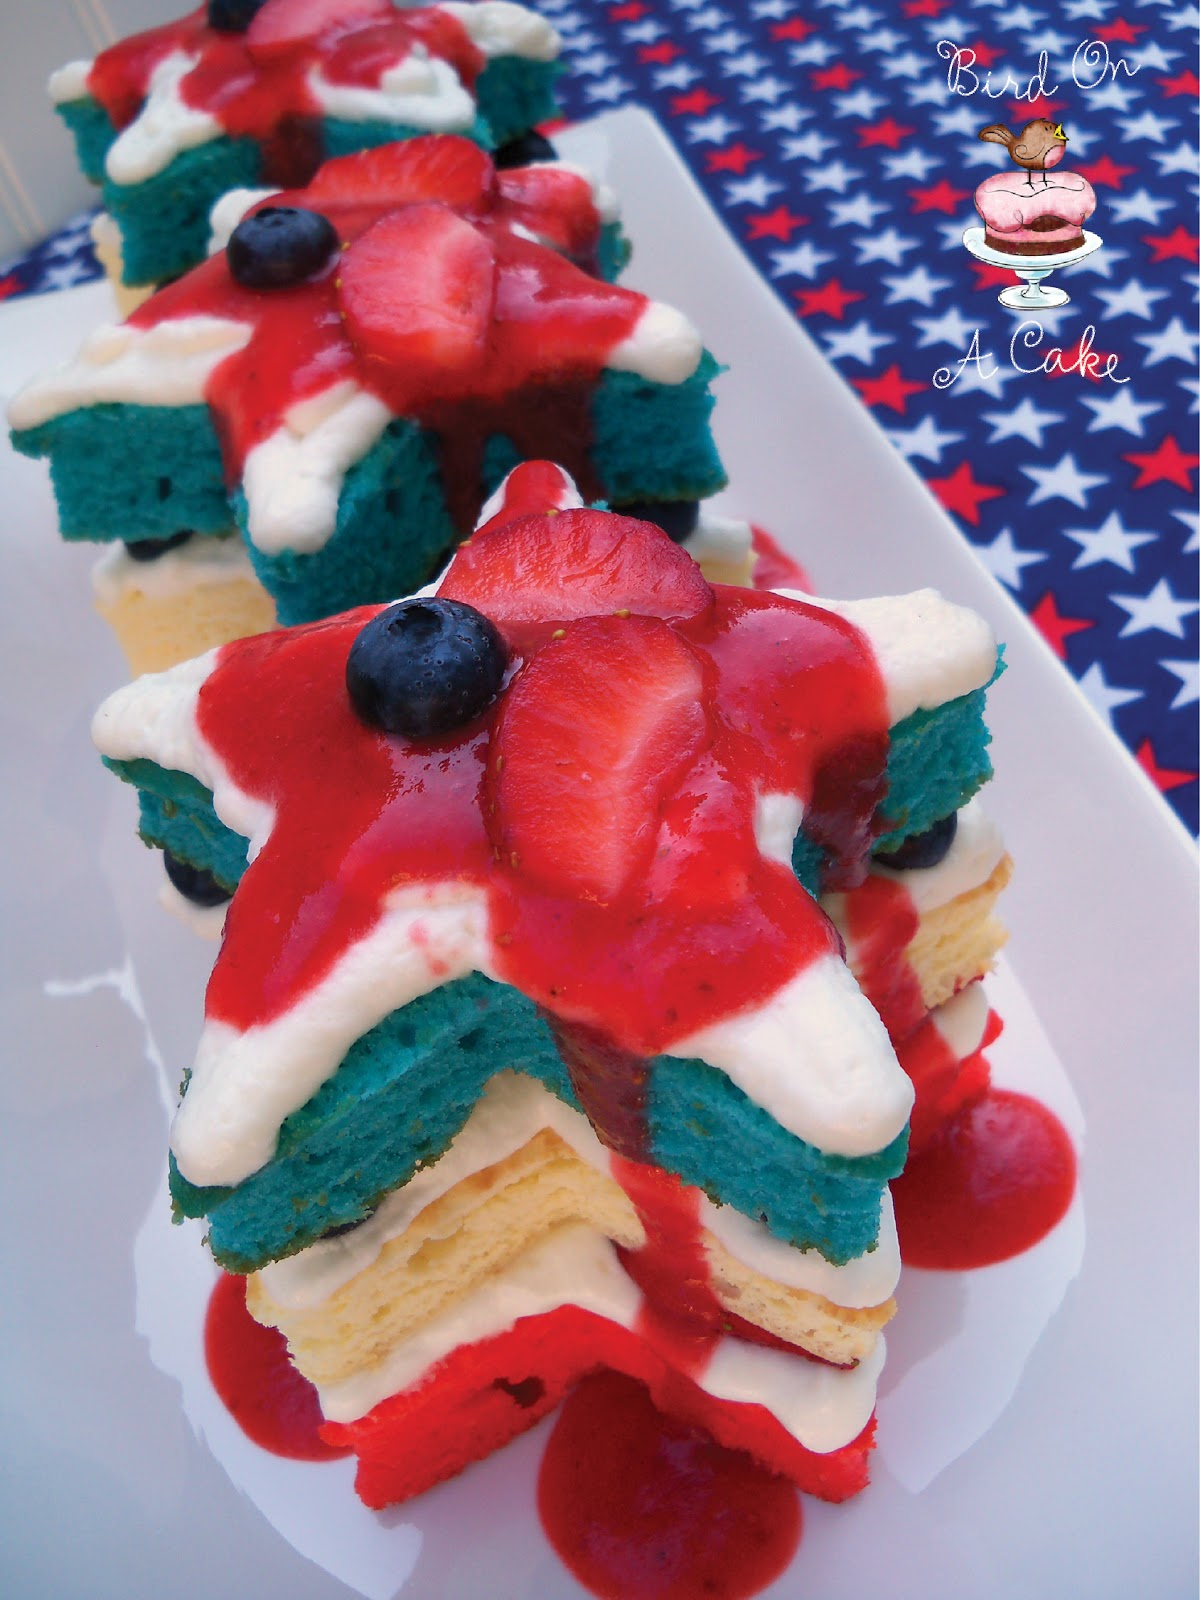 Cute food for kids 4th of july party food ideas for July 4th food ideas